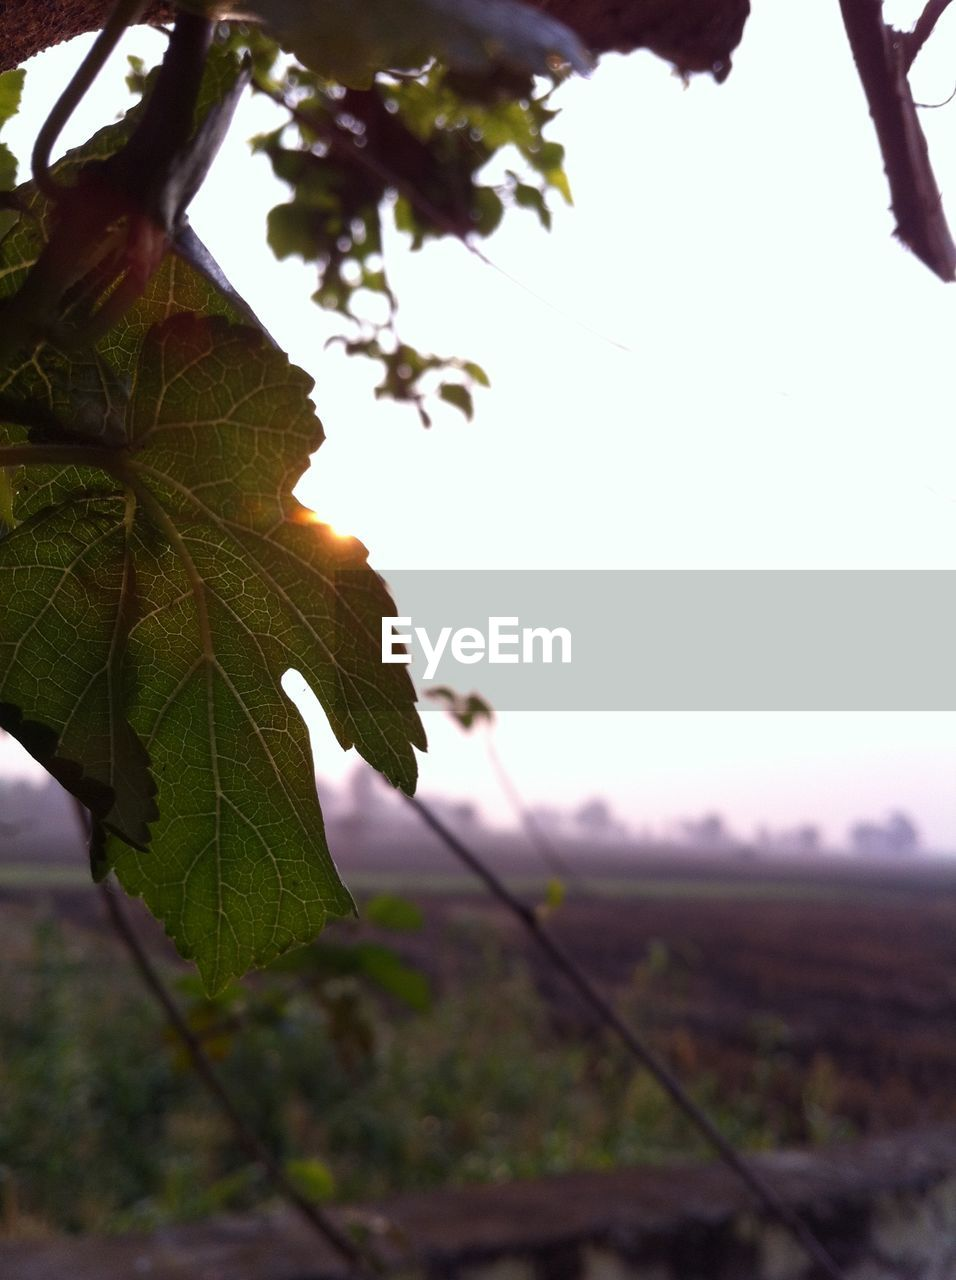 leaf, plant, plant part, growth, nature, focus on foreground, close-up, beauty in nature, tree, no people, day, sky, outdoors, selective focus, land, green color, landscape, field, tranquility, environment, leaves